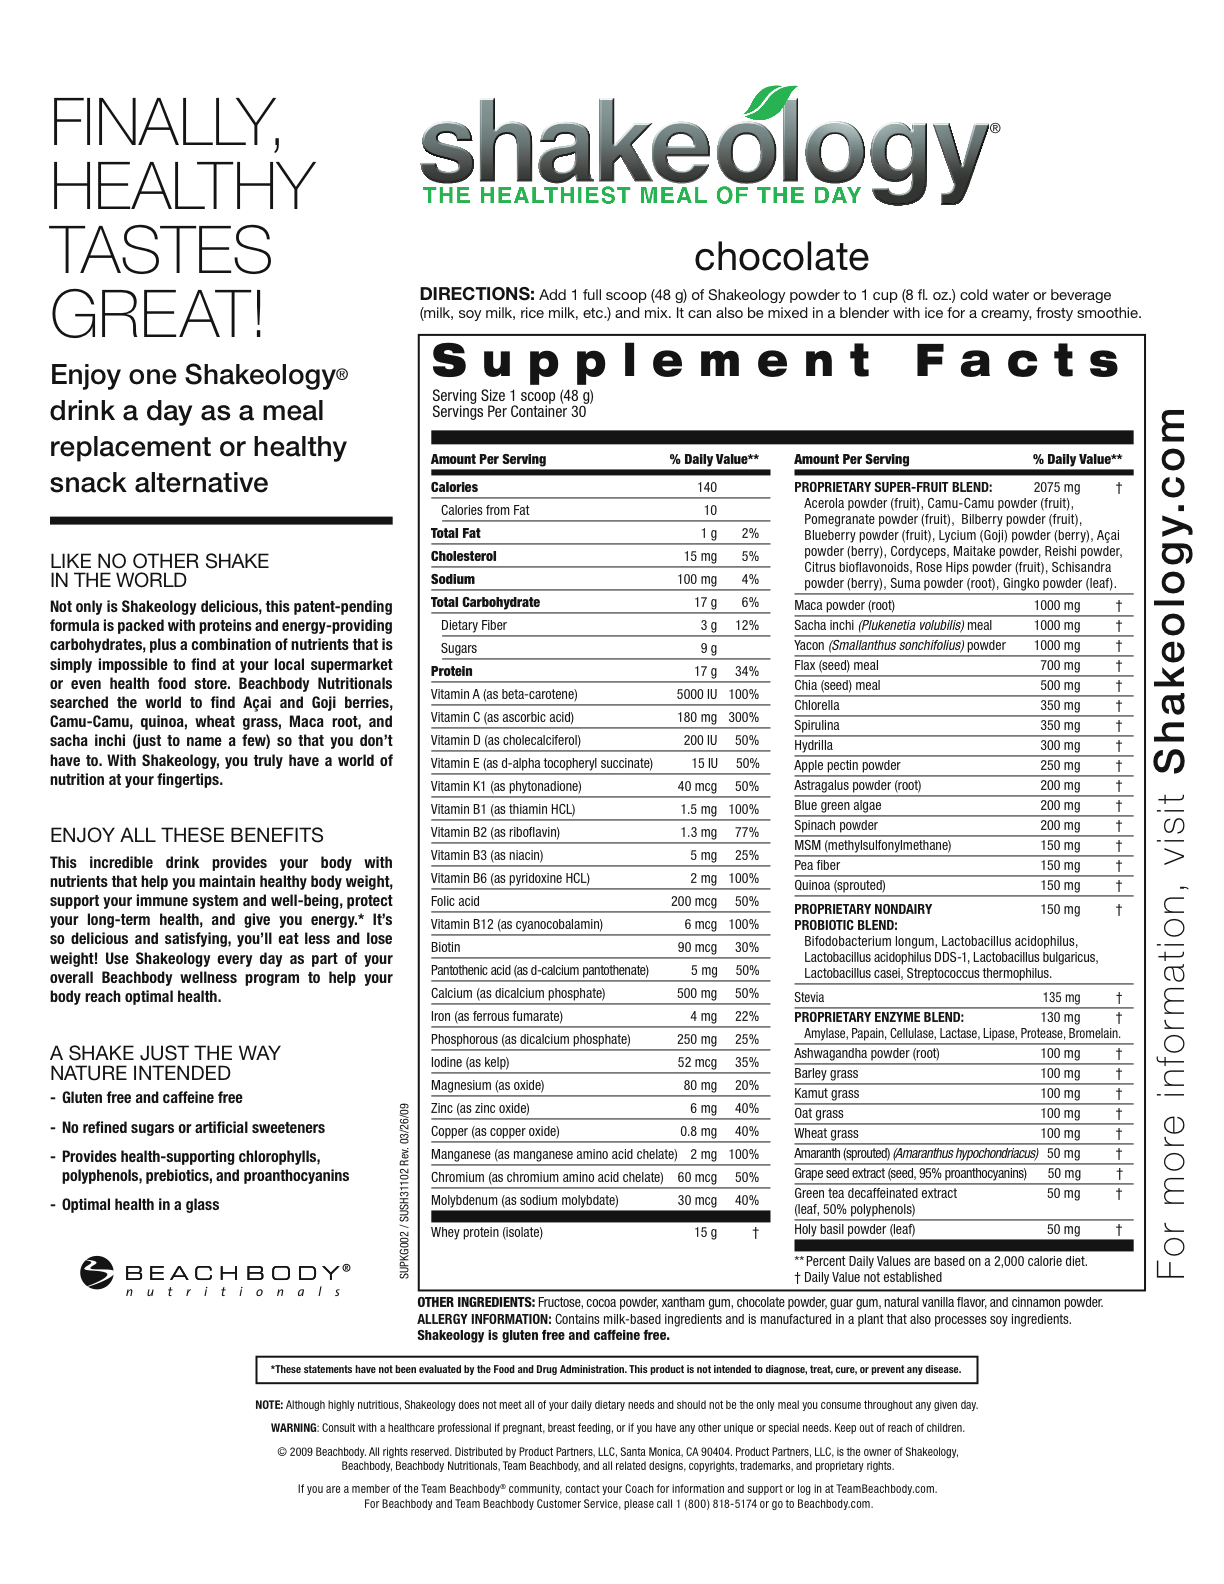 Shakeology Ingredients - Is It Worth It?